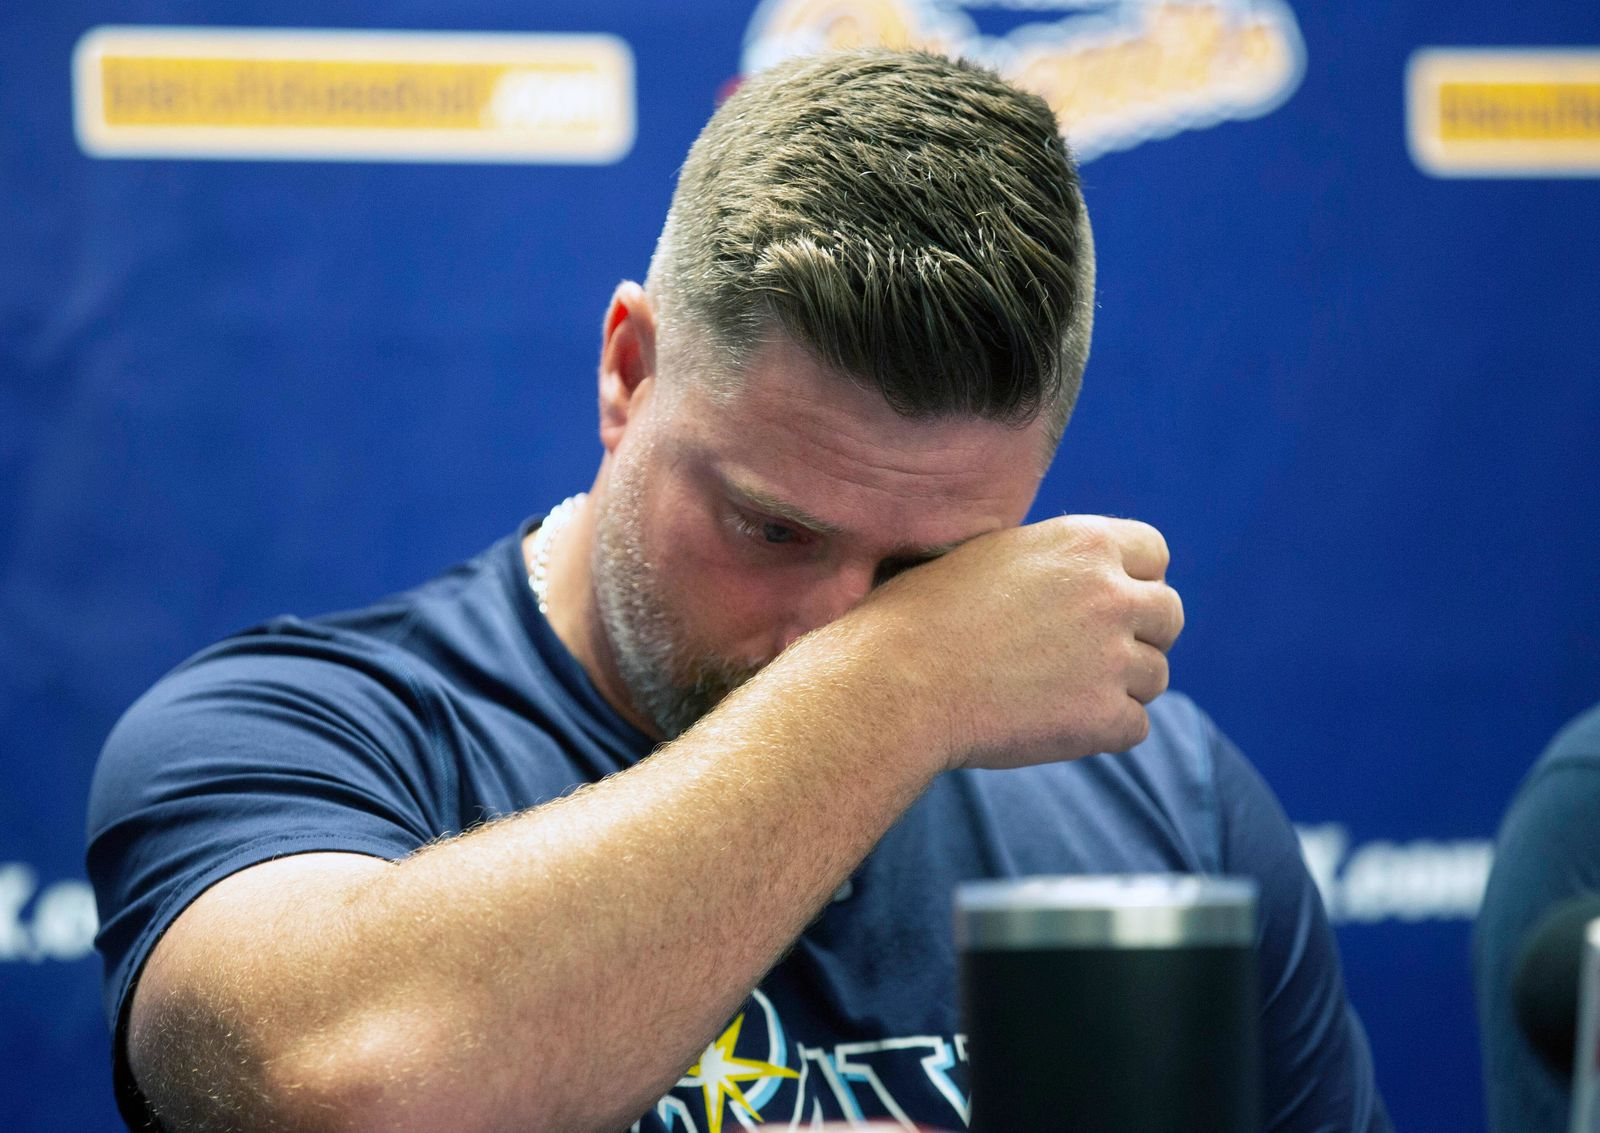 Montgomery Biscuits manager Morgan Ensberg wipes away tears during a news conference about pitcher Blake Bivens' wife and child who were killed in a triple homicide, Thursday, Aug. 29, 2019 in Montgomery, Ala. (Kirsten Fiscus/Montgomery Advertiser via AP)